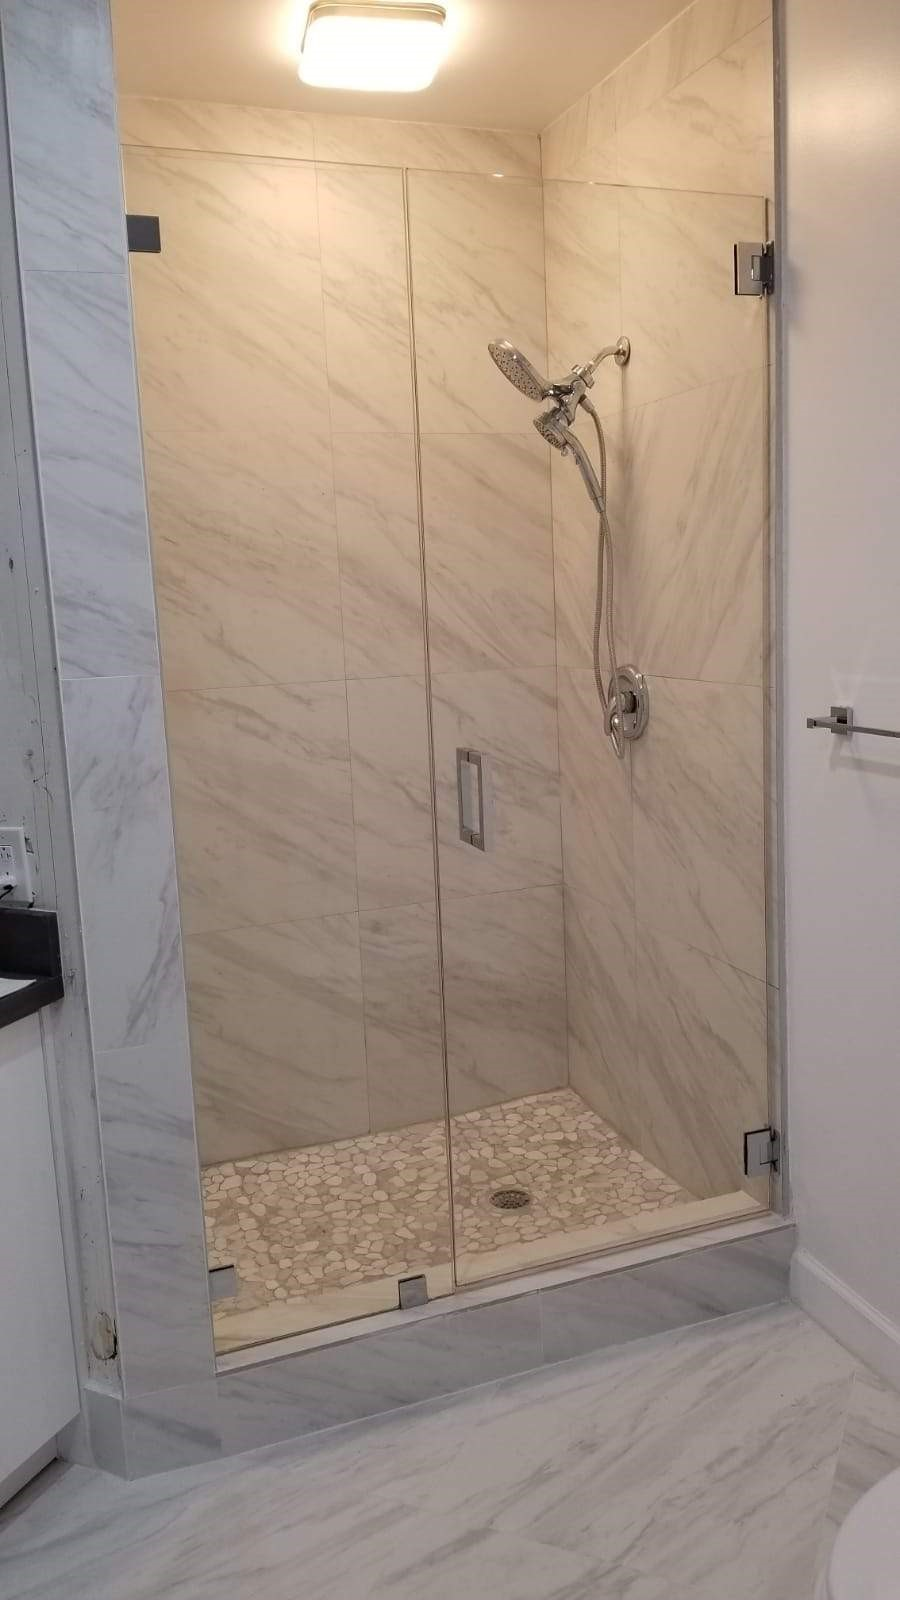 Hialeah Frameless Shower Door Company Announces New Service